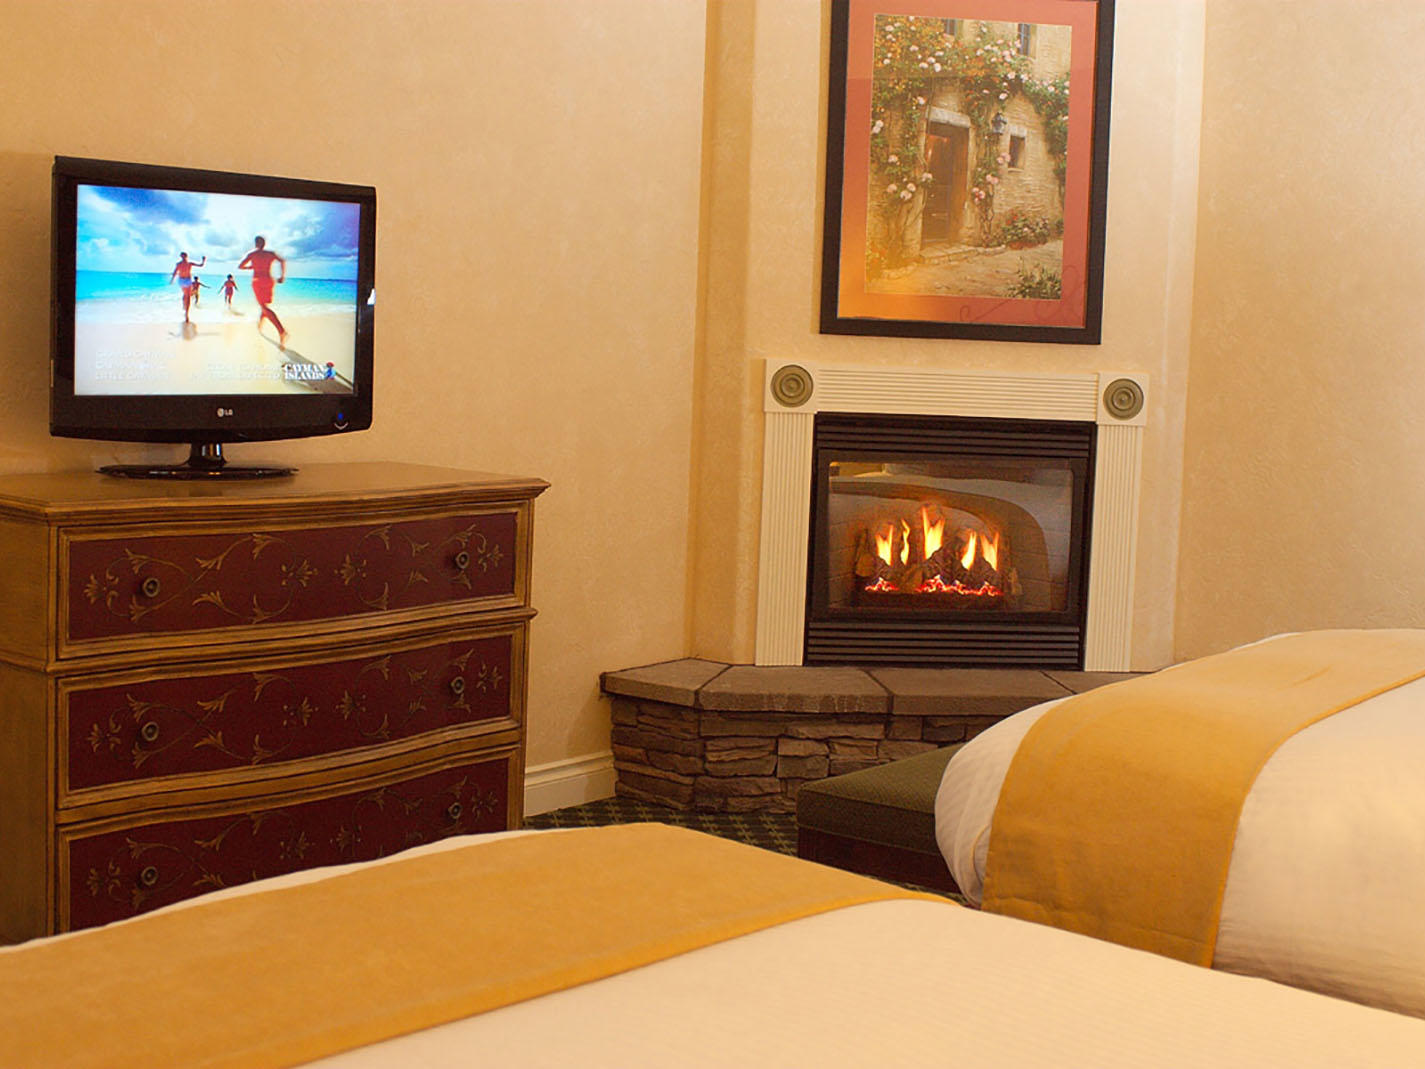 Guest room with TV and Fireplace